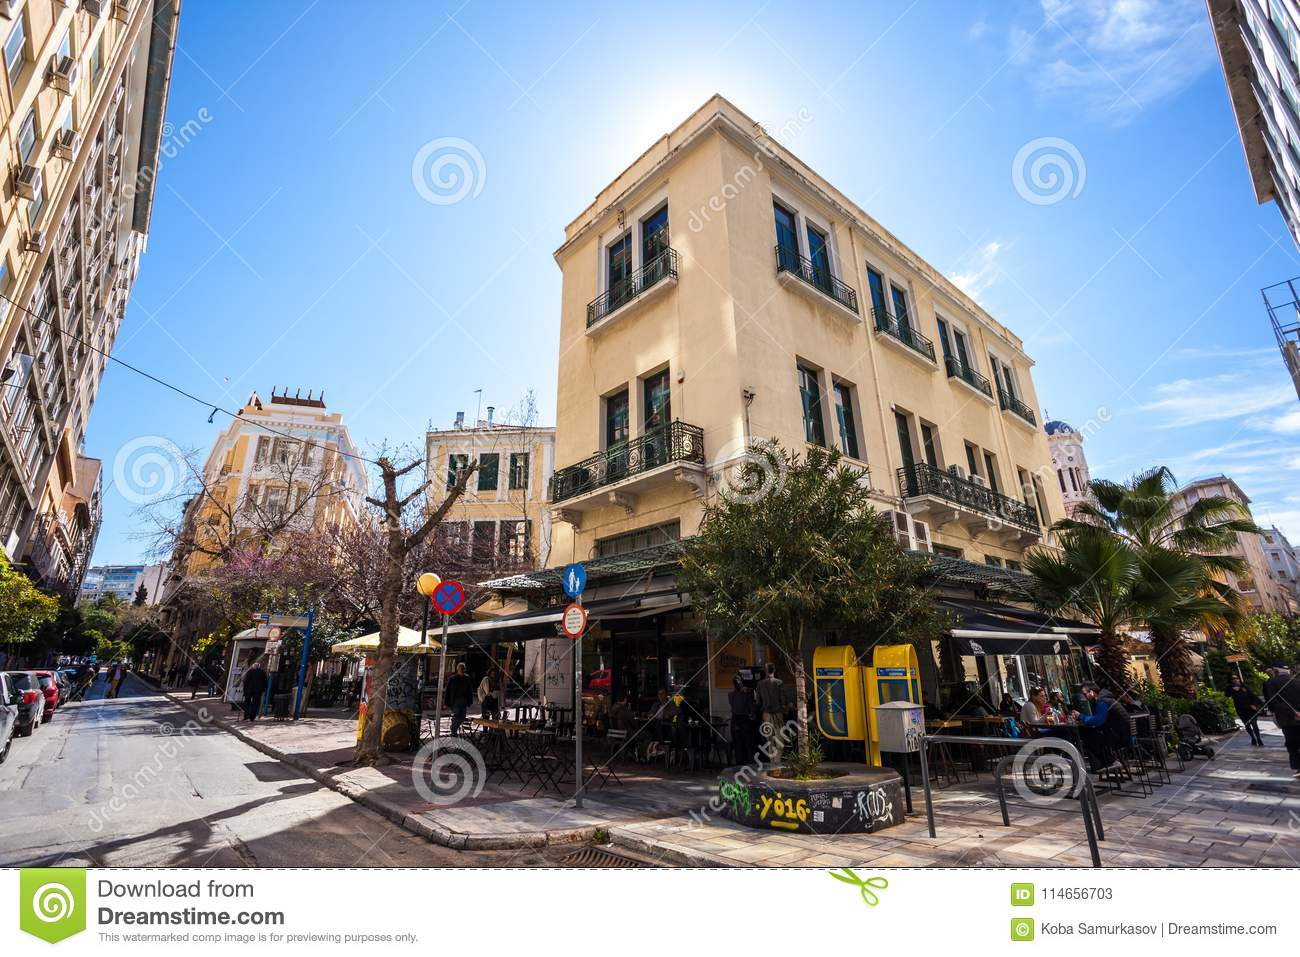 11 03 2018 atnens greece houses and streets of athens modern